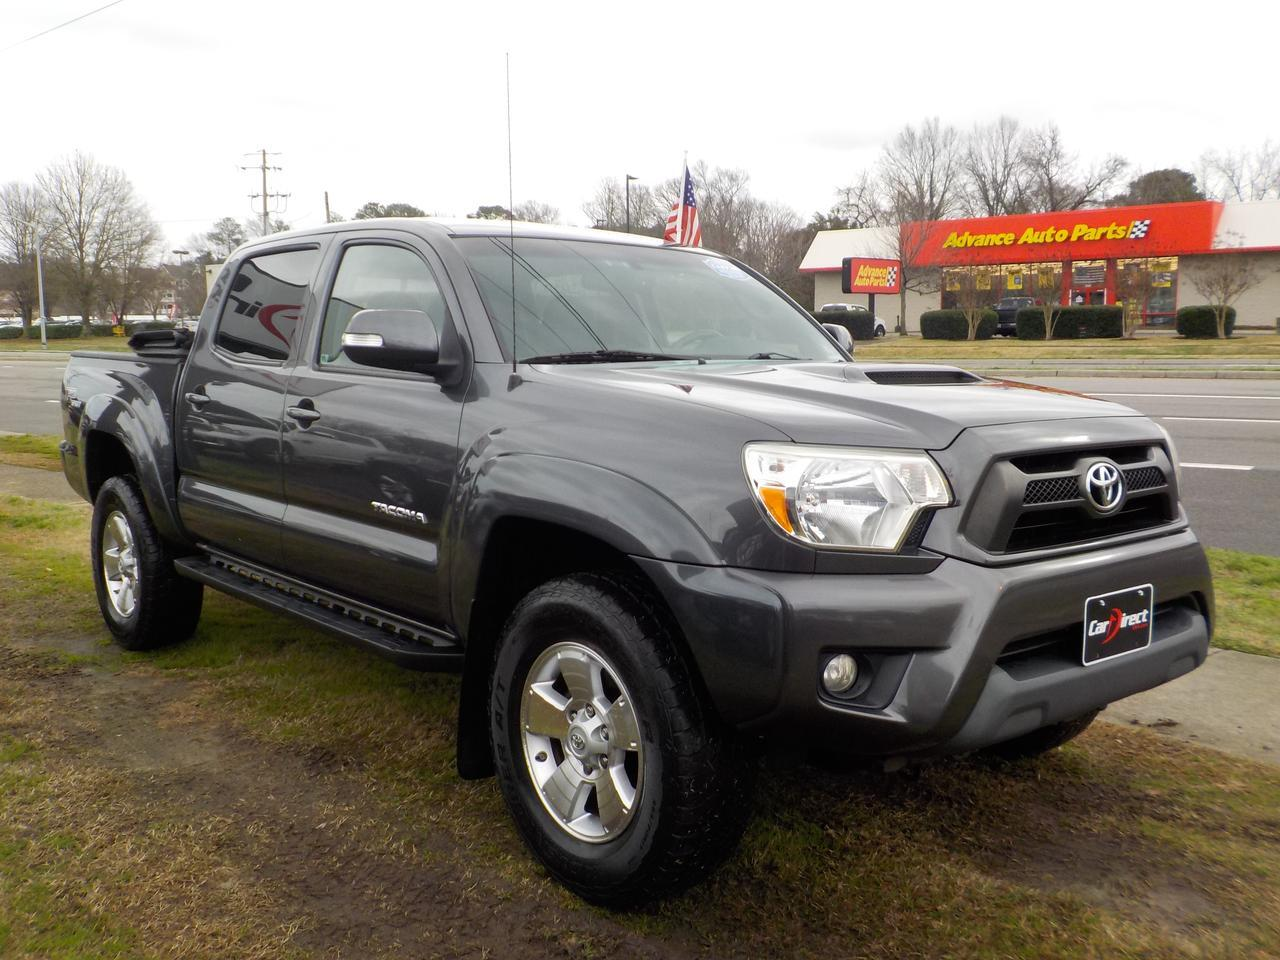 2012 TOYOTA TACOMA TRD SPORT DOUBLE CAB 4X4, WARRANTY, SOFT TONNEAU COVER, RUNNING BOARDS, KEYLESS ENTRY, TOW PACKAGE! Virginia Beach VA